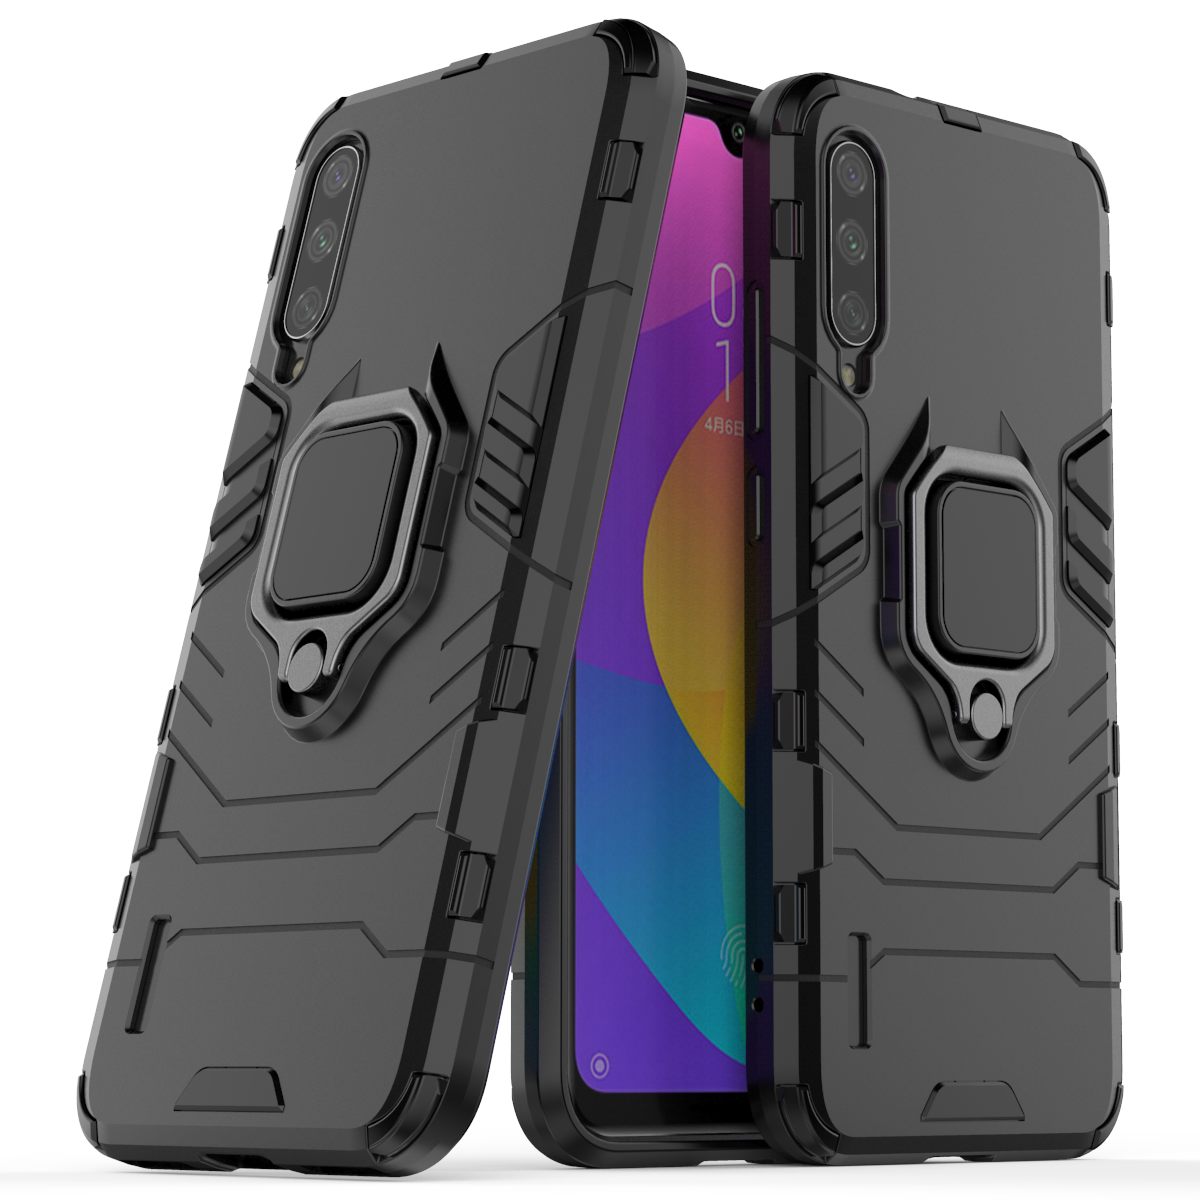 Bakeey Armor Magnetic Card Holder Shockproof Protective Case For Xiaomi Mi CC9e /Xiaomi Mi A3 6.088 inch